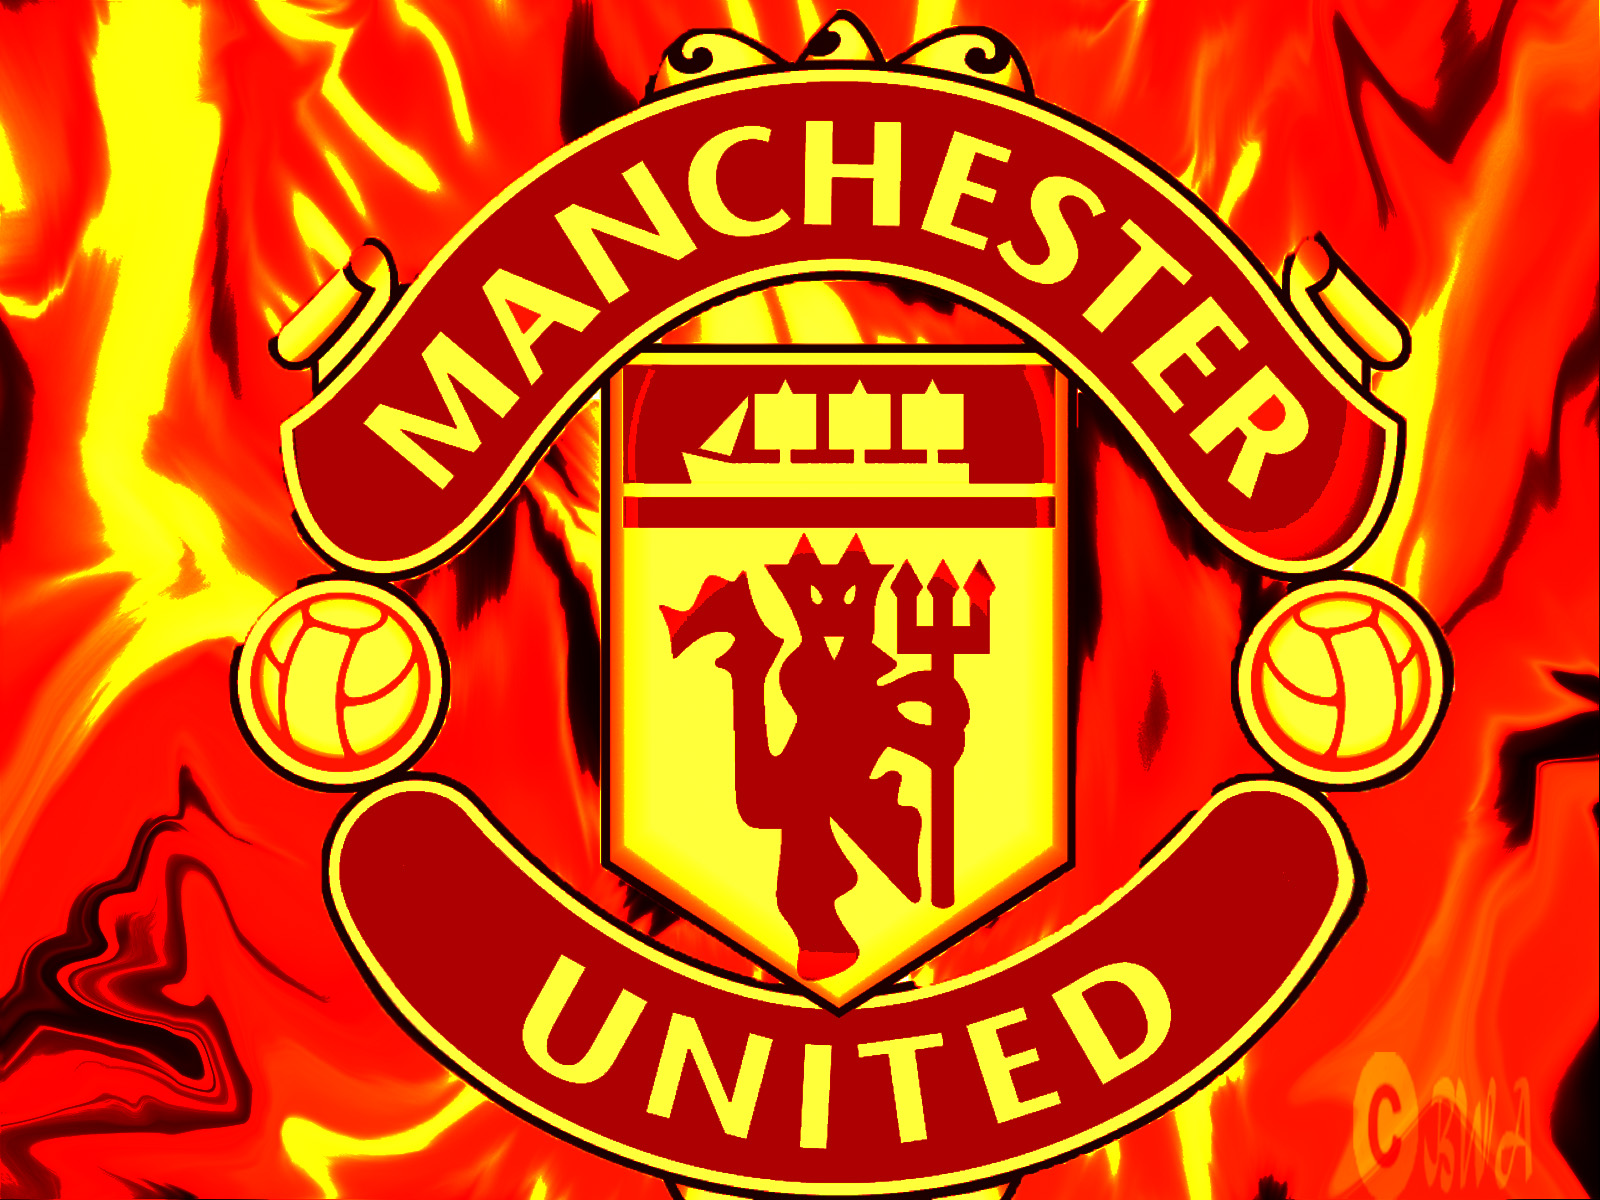 football manchester united logo 2013 hd wallpapers man utd logo wiki man utd logo 512x512